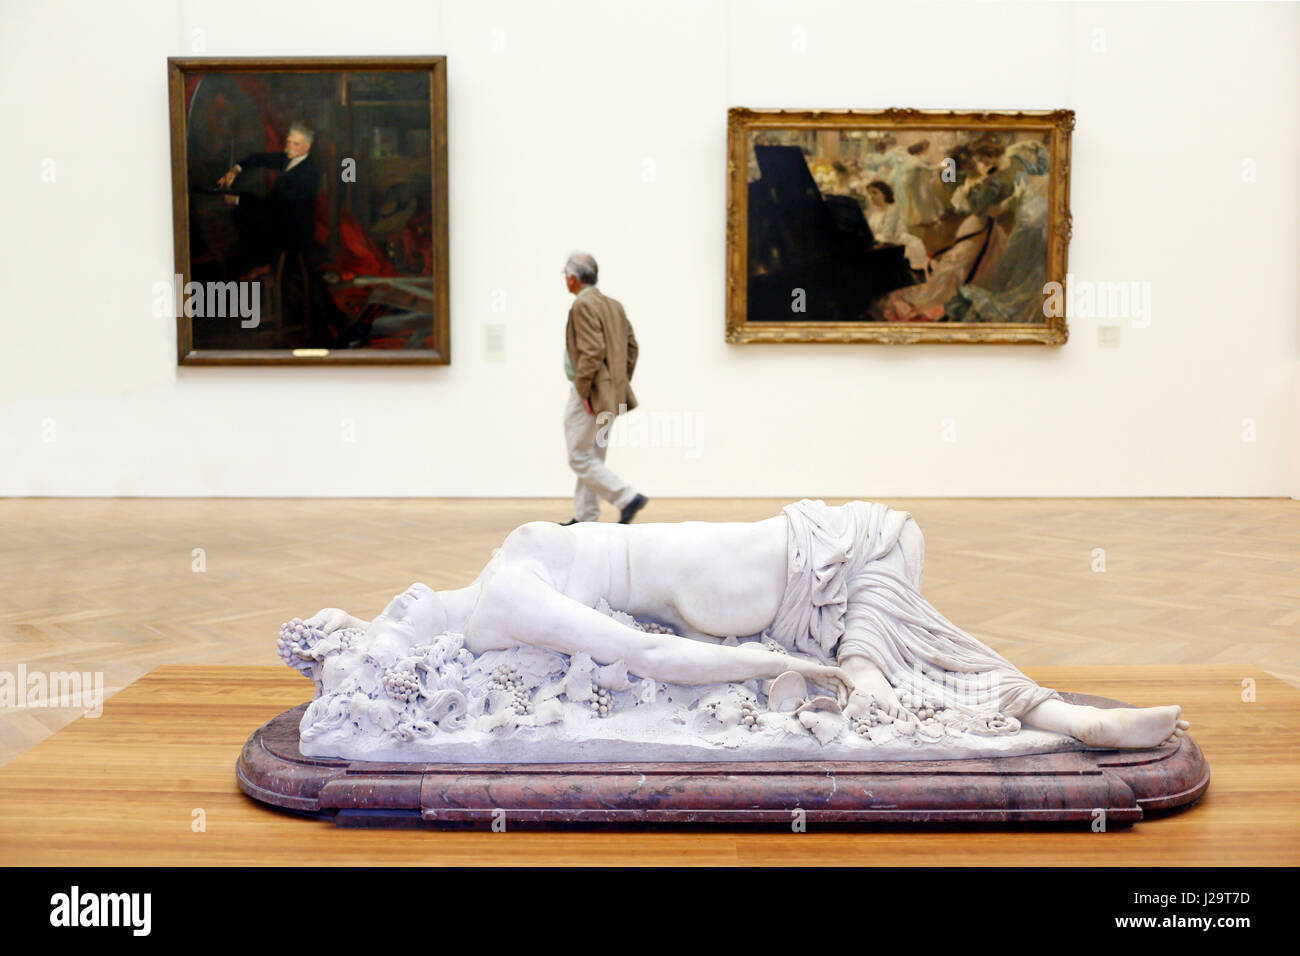 France, Paris, 8th district, Petit Palais. Sculpture of a Maenad, by Auguste Clesinger (marble, 1848) in the foreground. Stock Photo